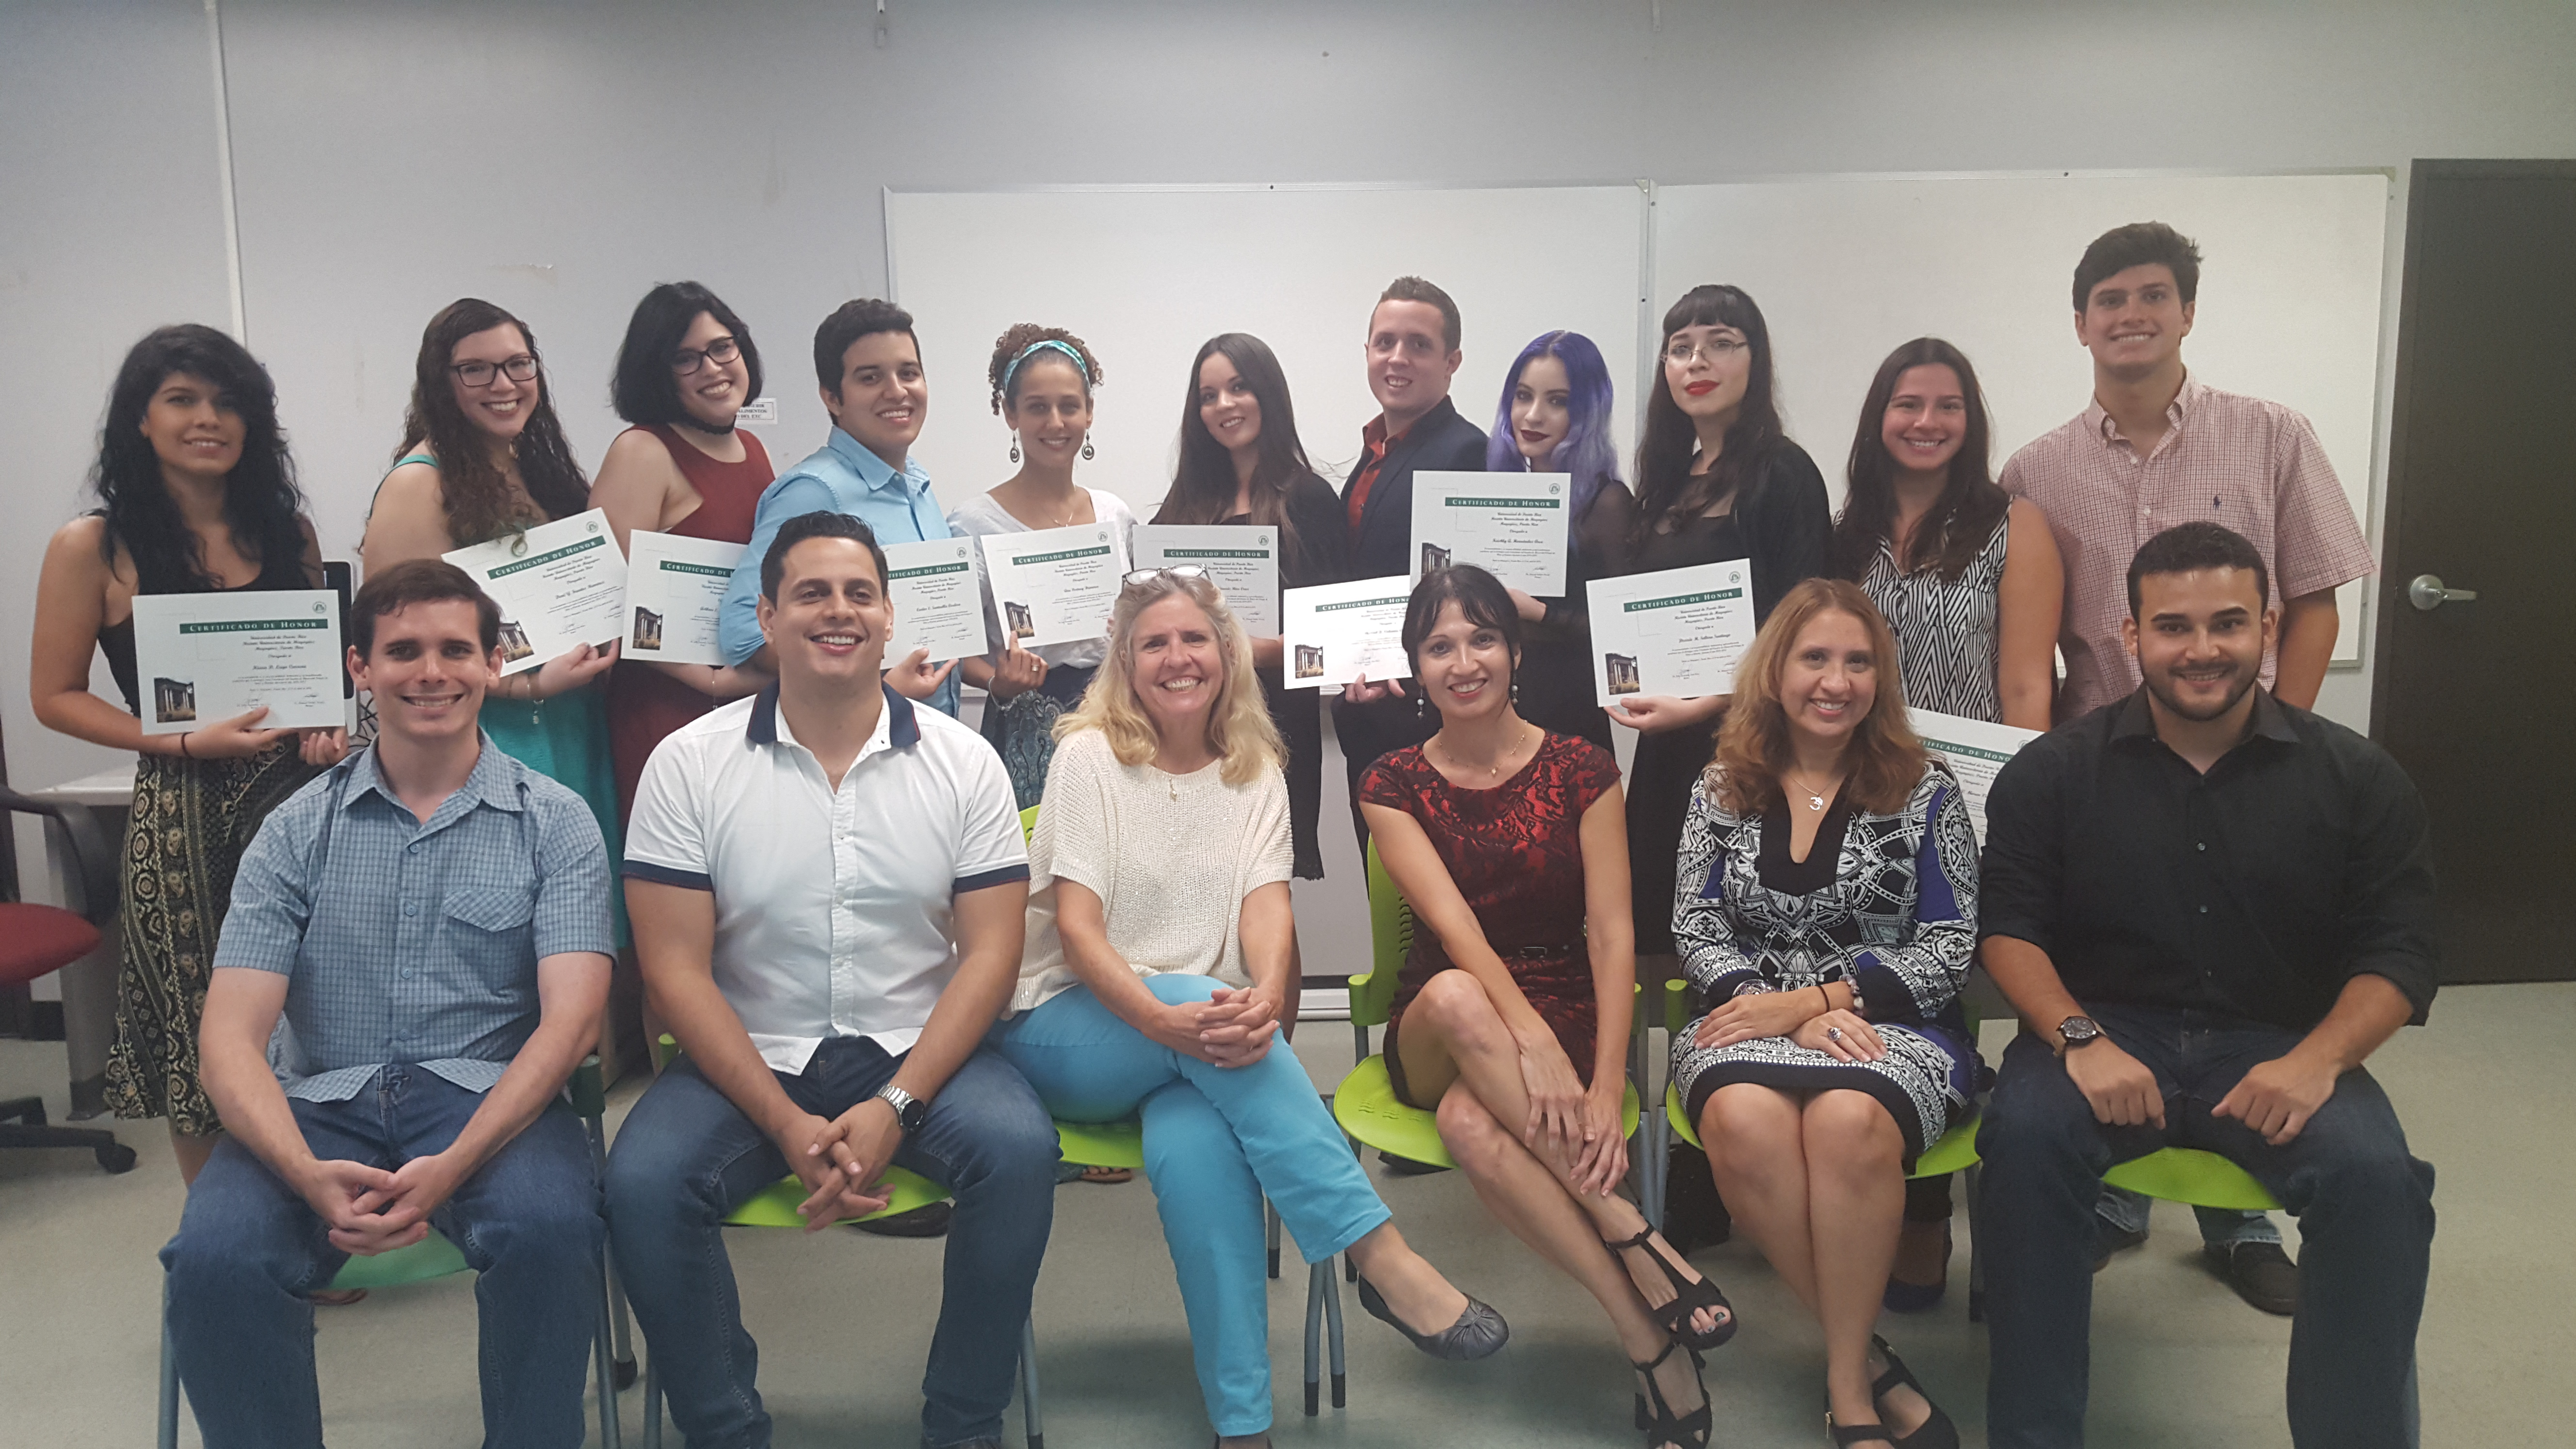 The Honor Roll Students posing for the camera while holding up their certificates (background) and the faculty members posing along with them (foreground).